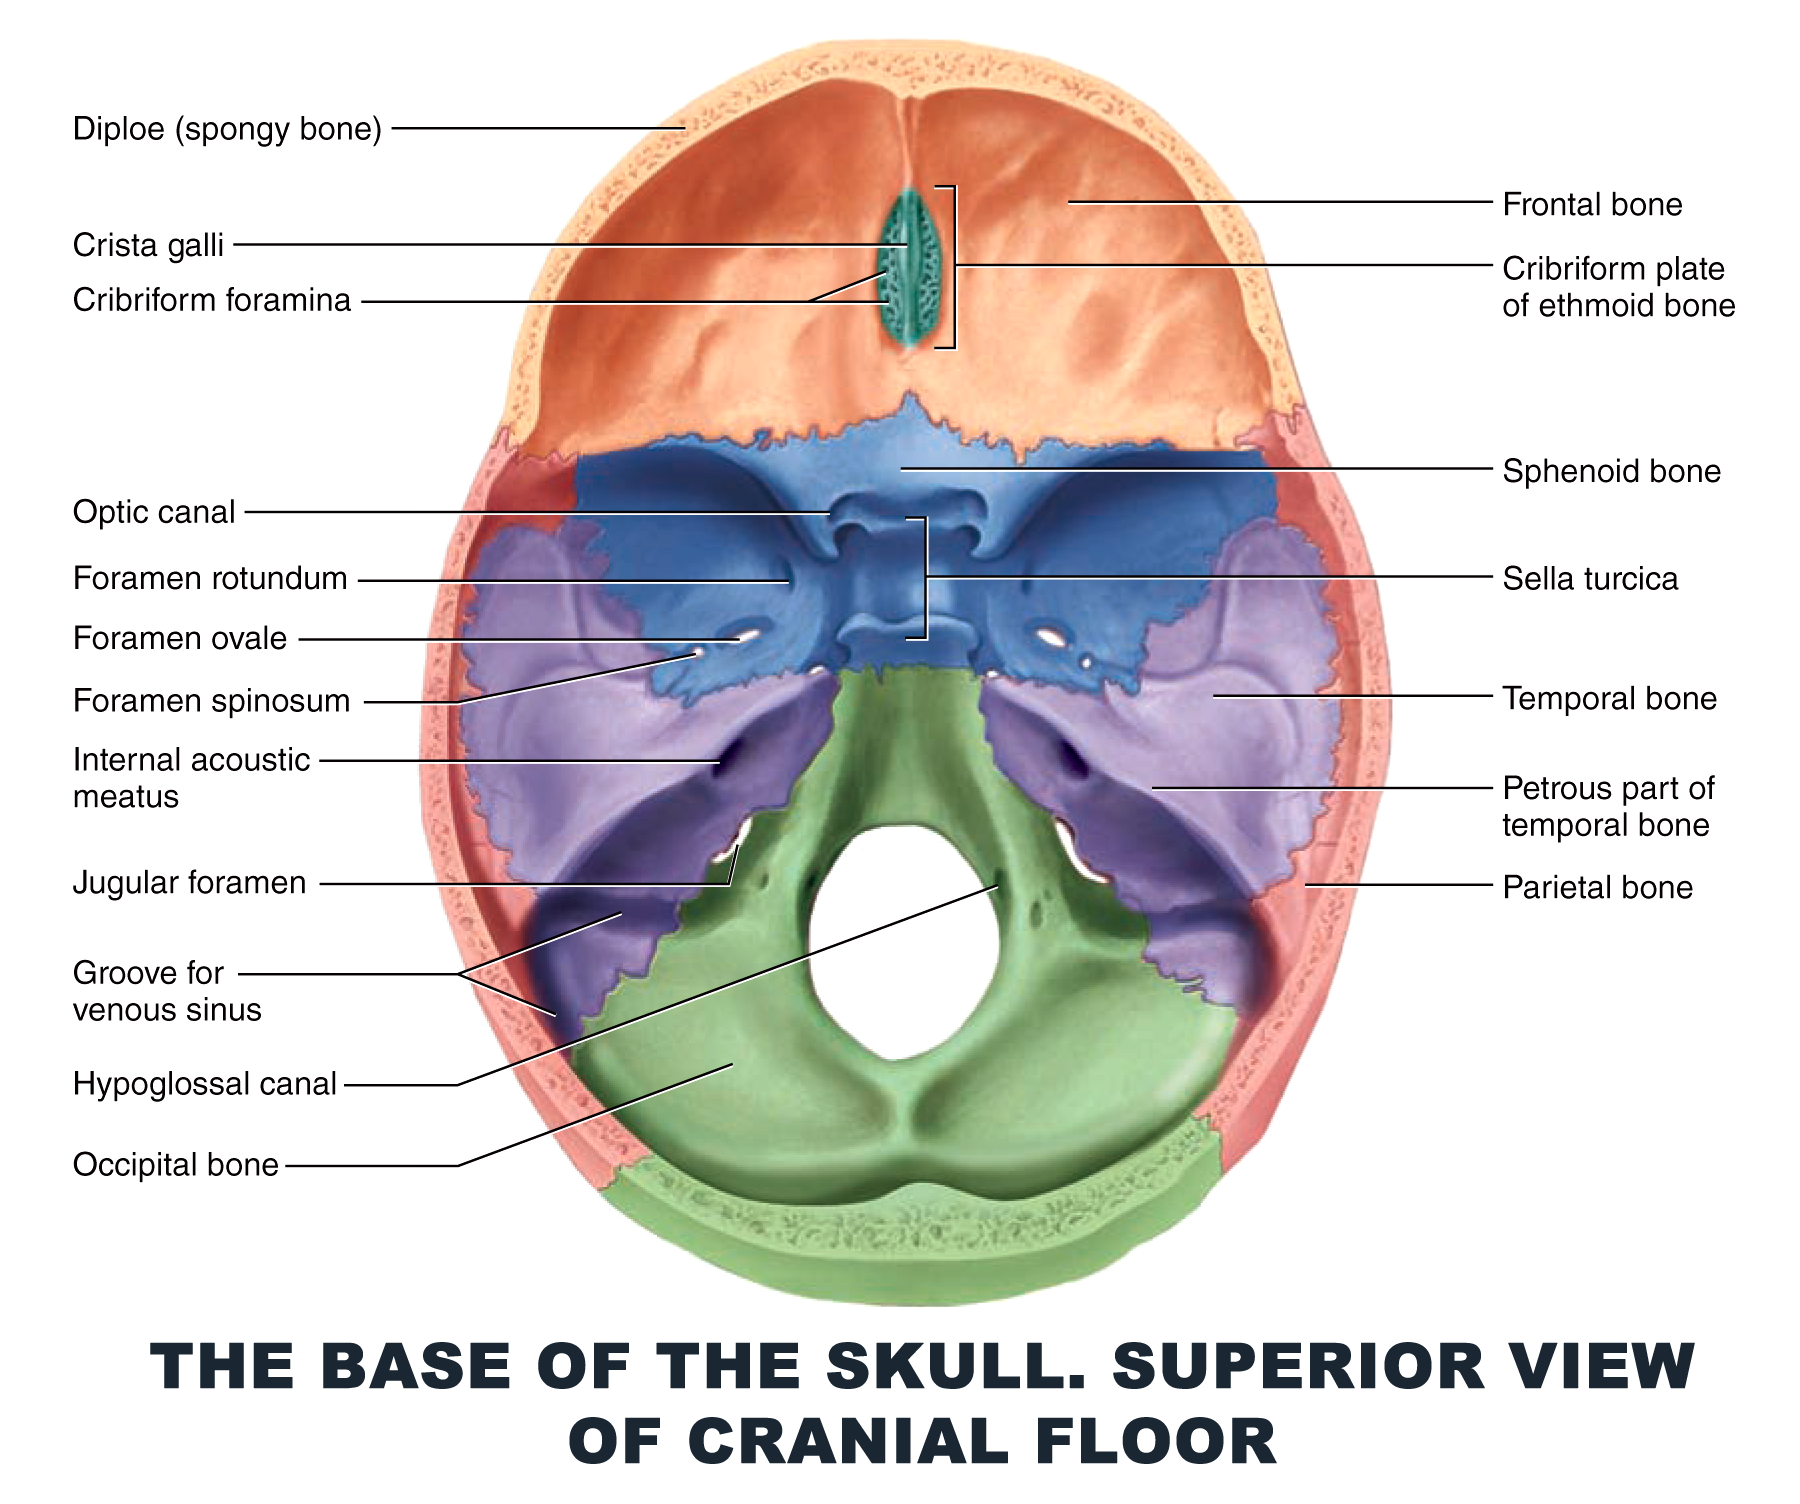 The Base of the Skull. Superior view of cranial floor - #anatomy ...